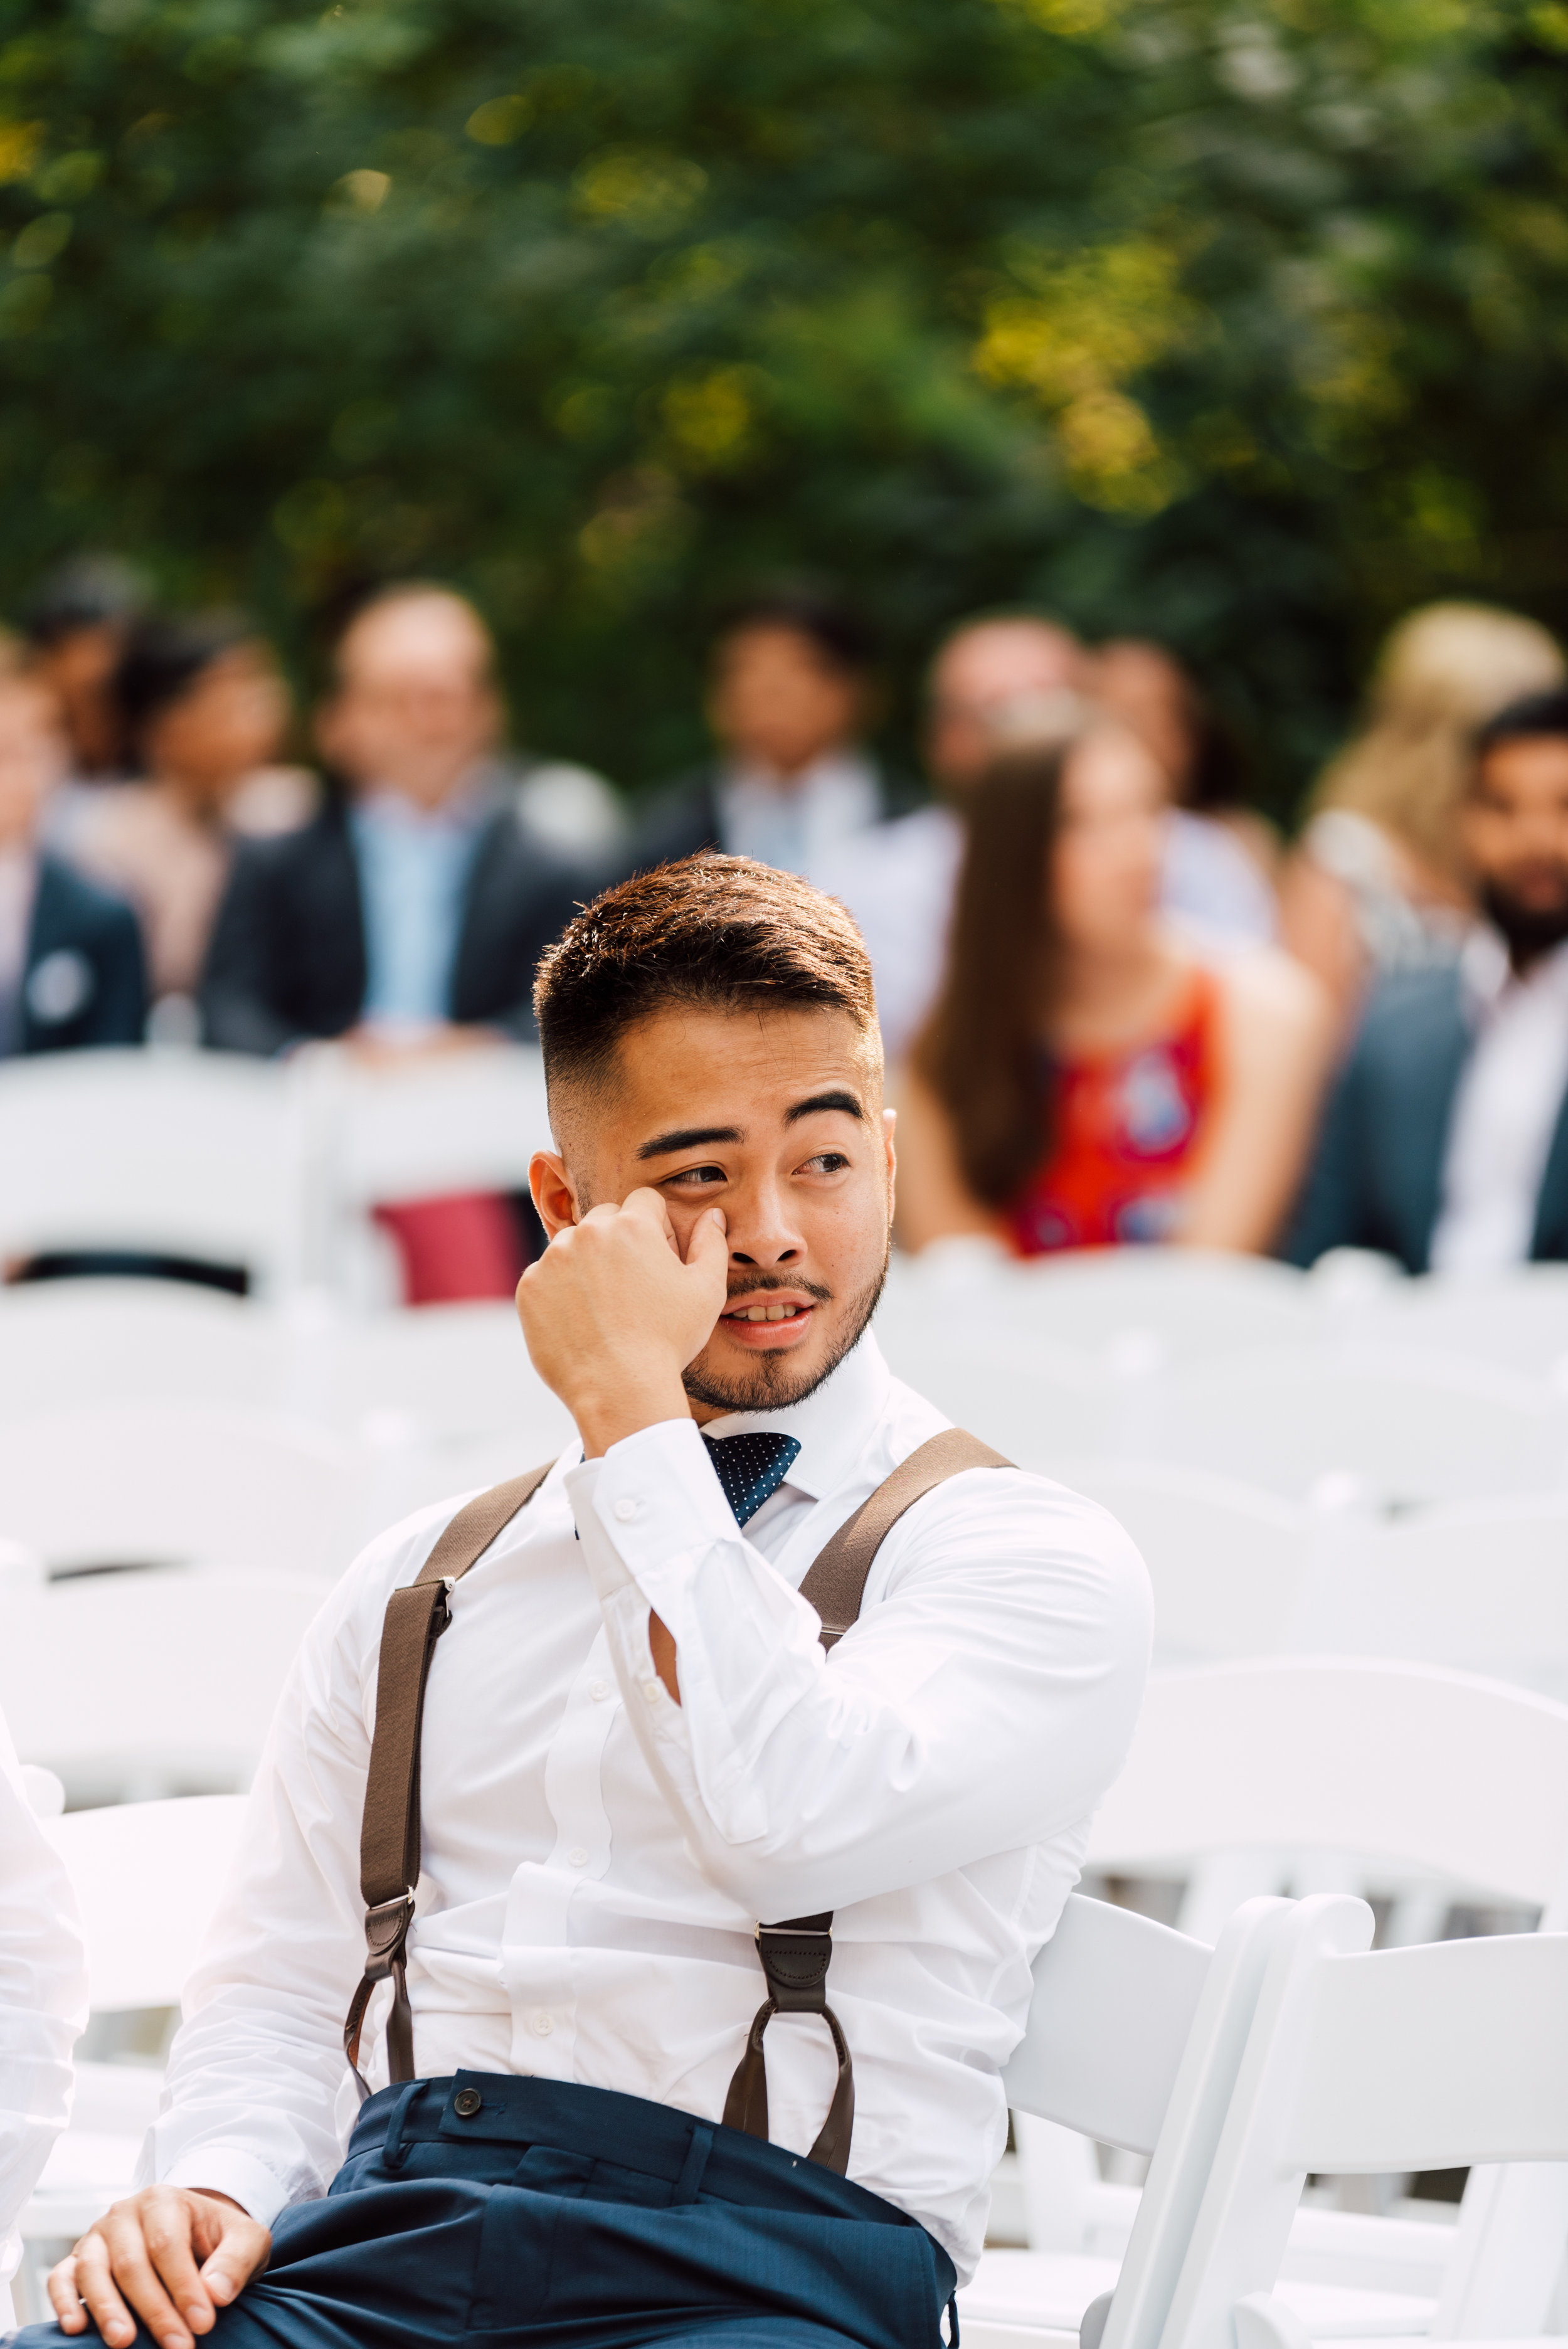 Guy crying at a greenhouse wedding in toronto